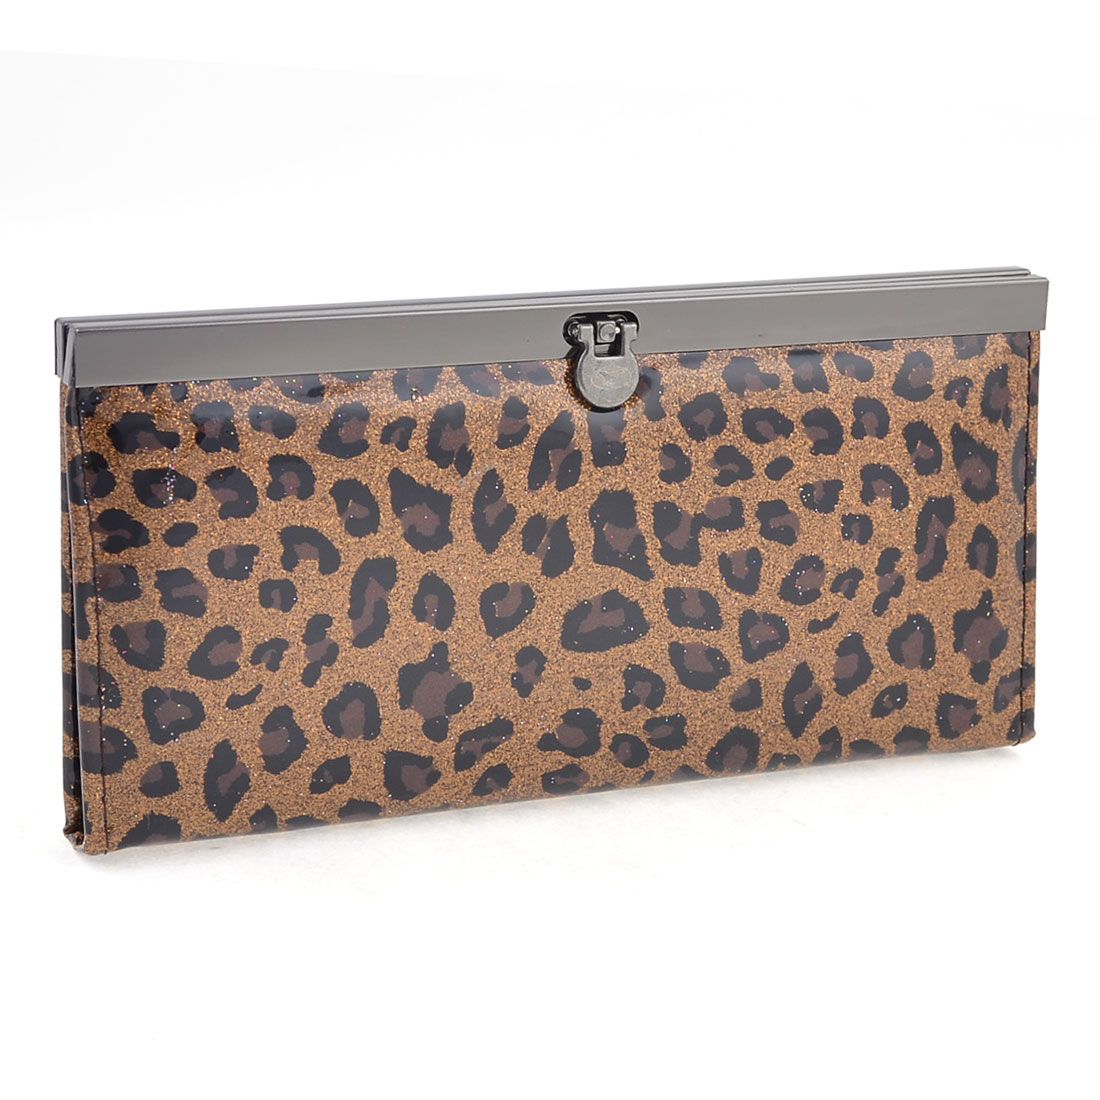 Dark Brown Glittering Powder Leopard Pattern Purse for Ladies